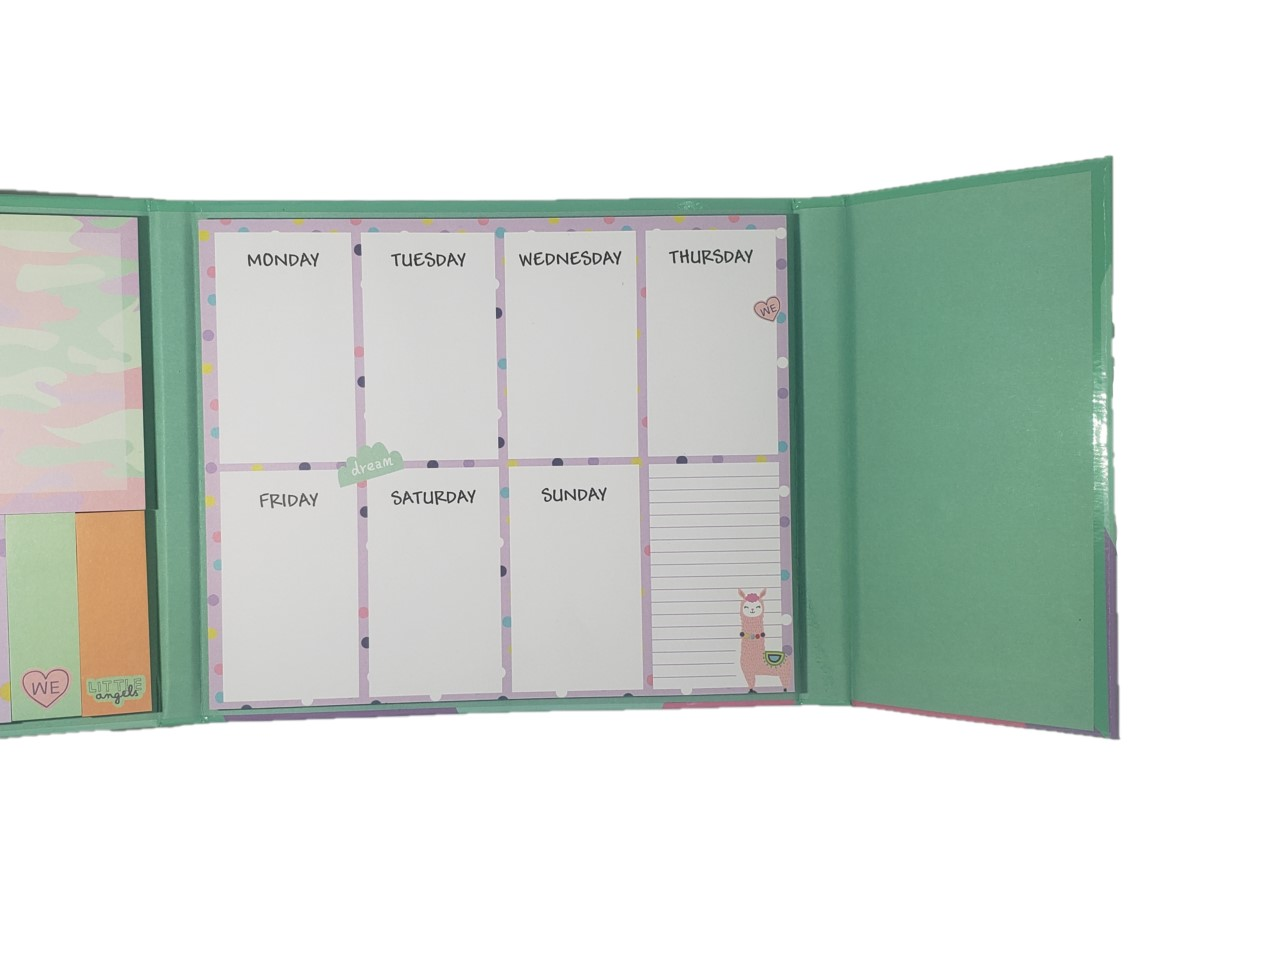 Bloco Sticky Note Lhama com Planner Semanal